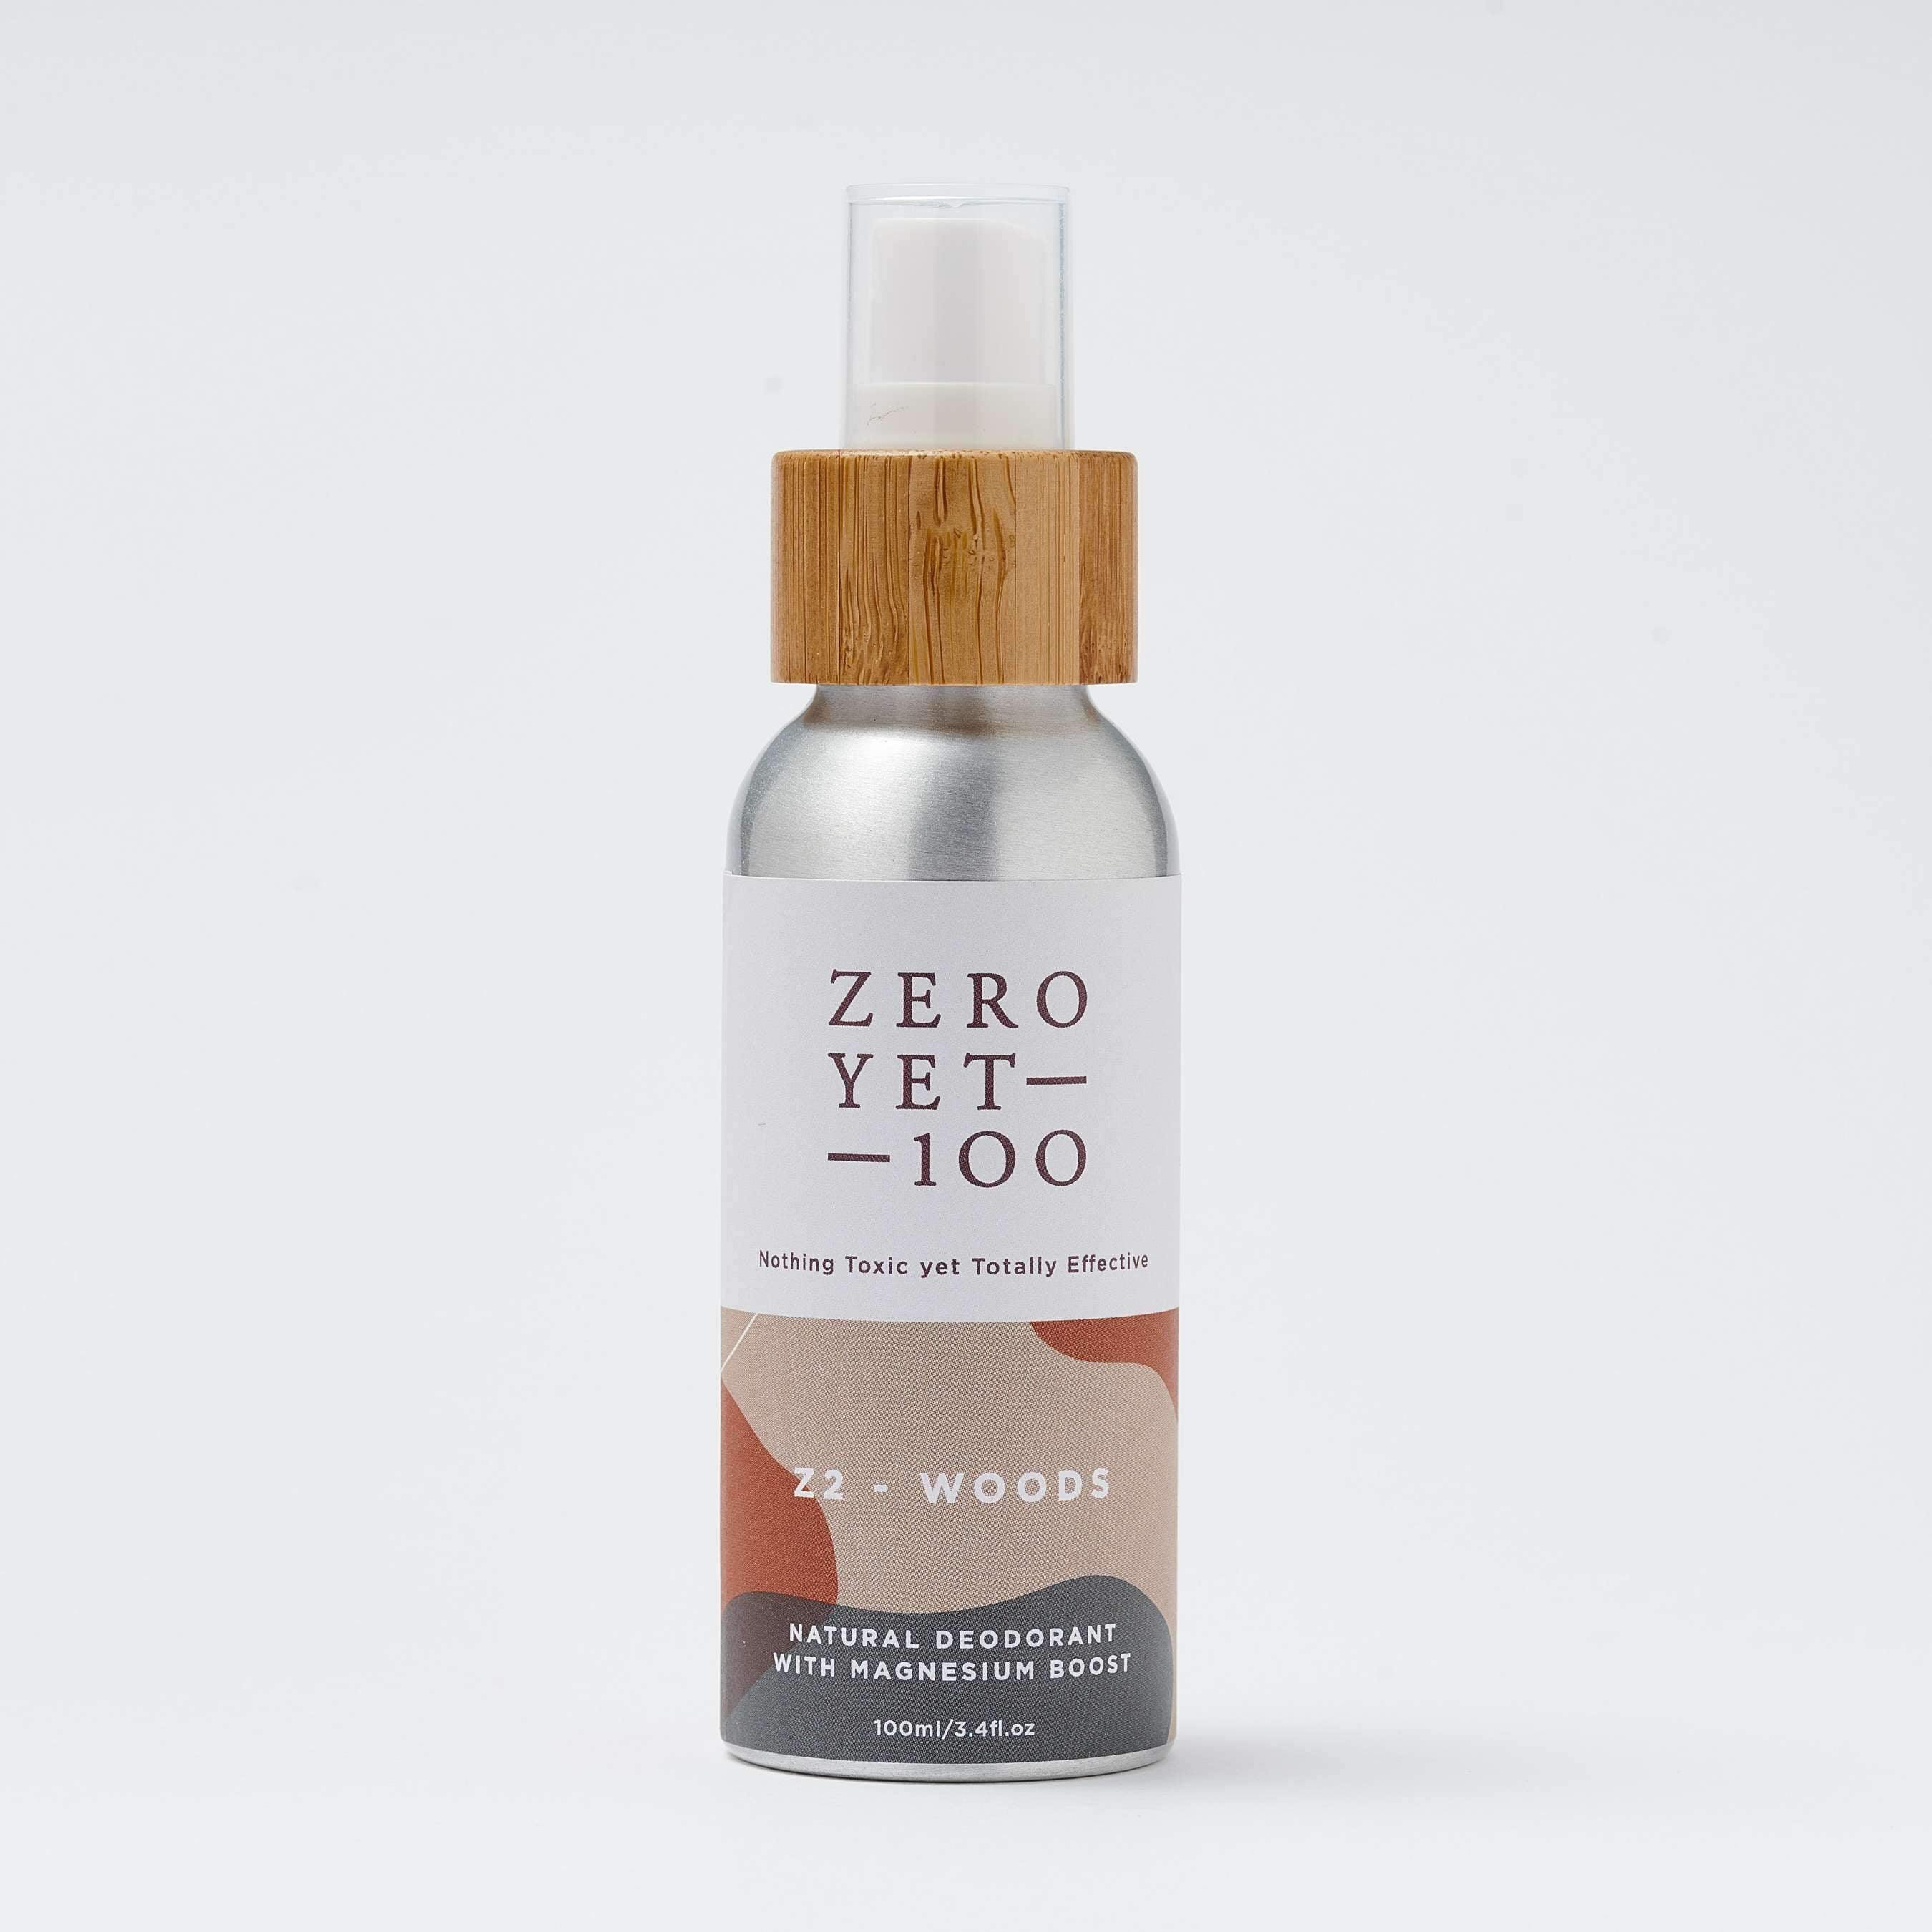 Z2 Woods Deodorant Spray - SOUL EARTH